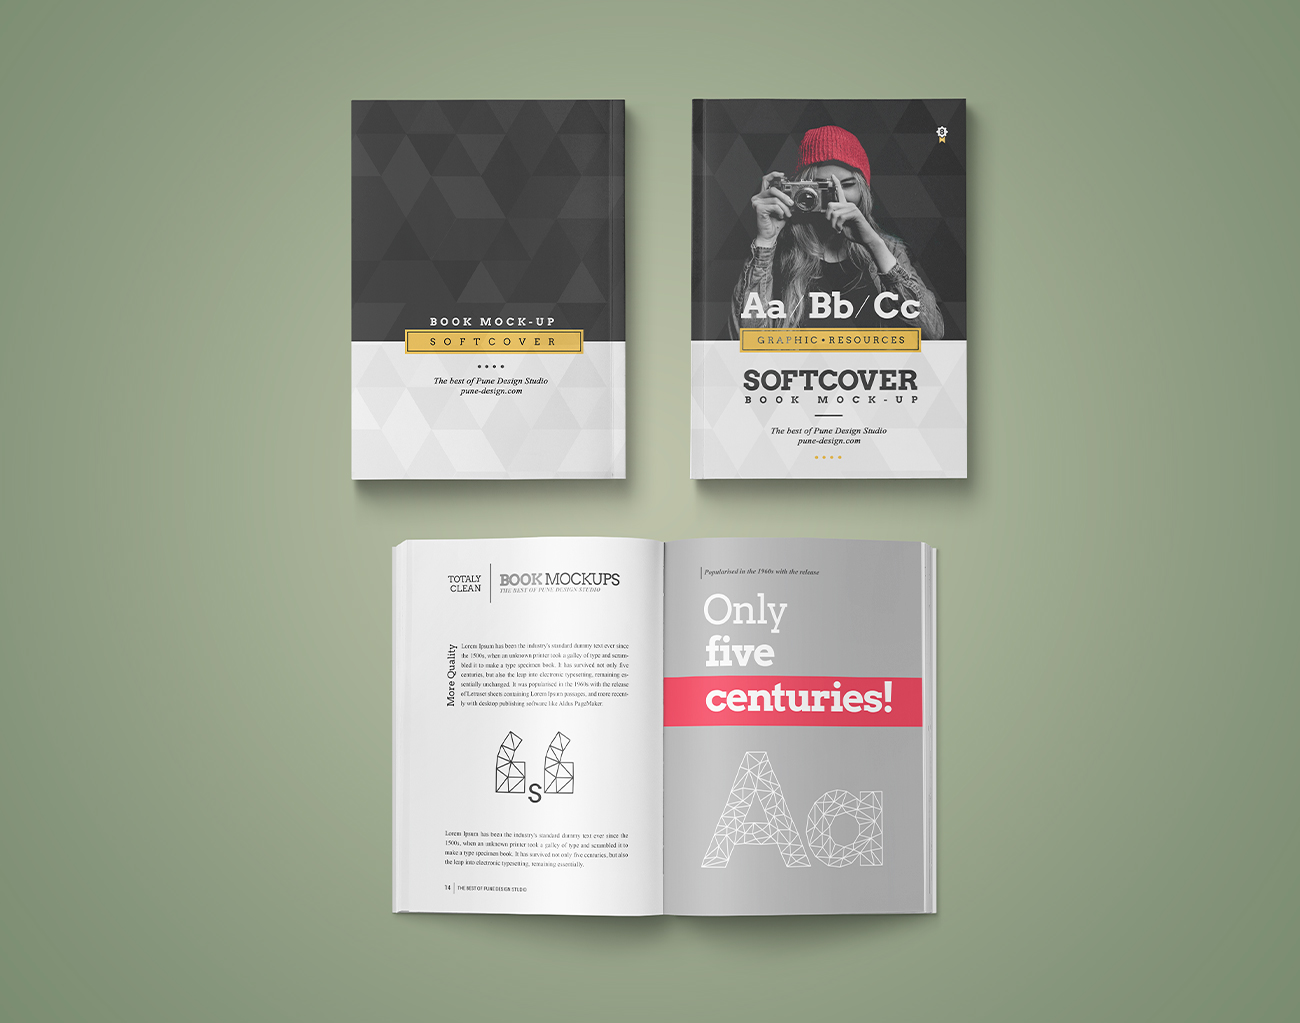 Book-mockup-softcover-06